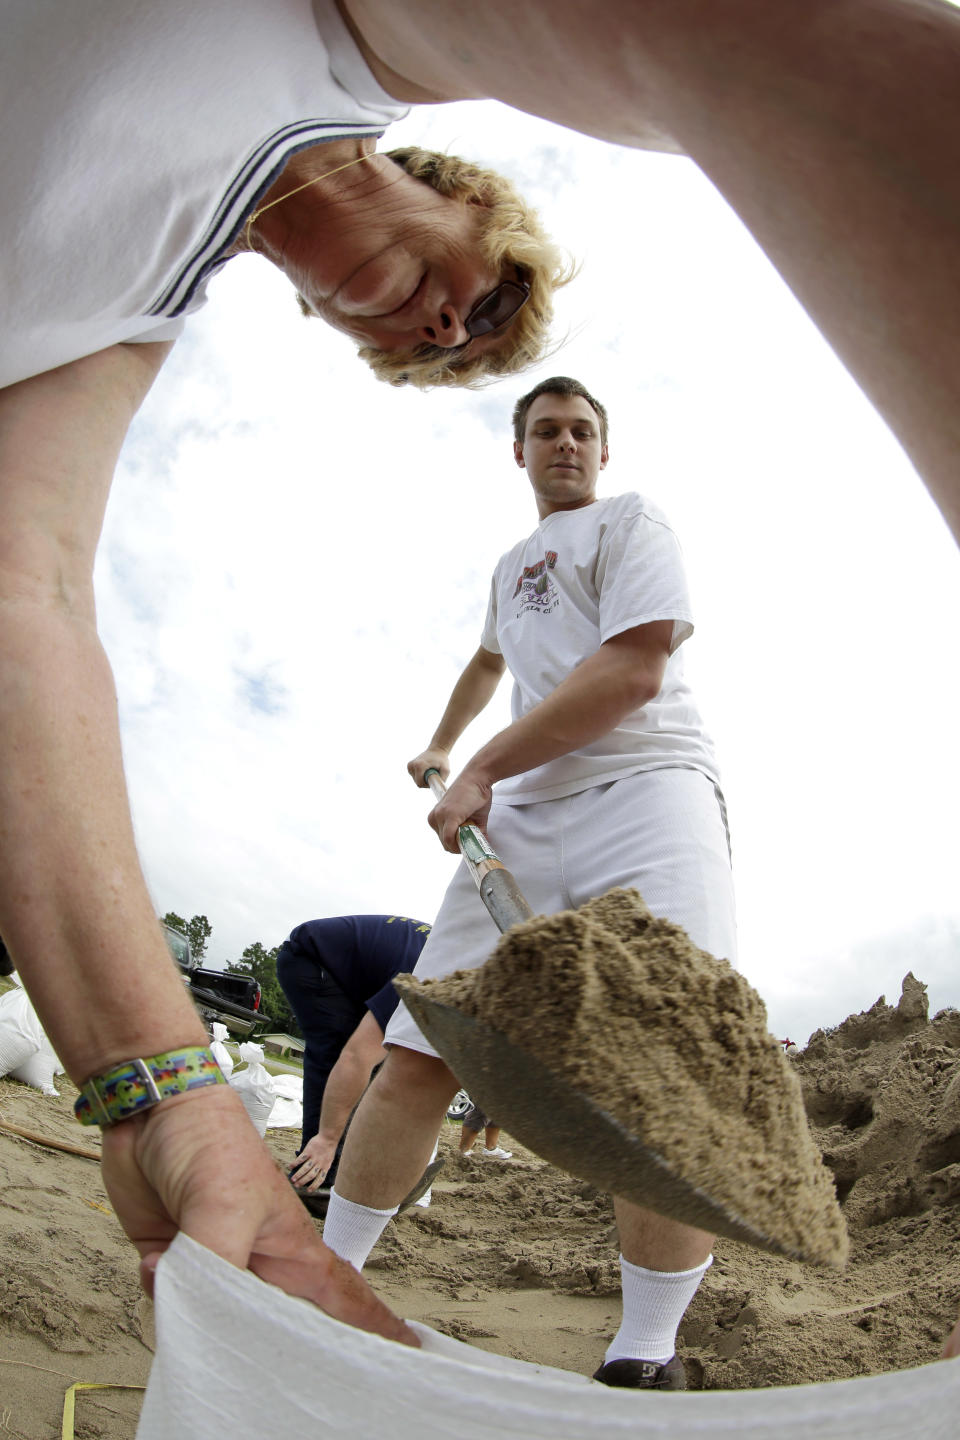 Richard Sackfield, center, fills a sandbag for Annie Savoie, left, as Isaac nears landfall Tuesday, Aug. 28, 2012, in Houma, La. Isaac is churning it's way across the Gulf of Mexico heading towards Louisiana. (AP Photo/David J. Phillip)